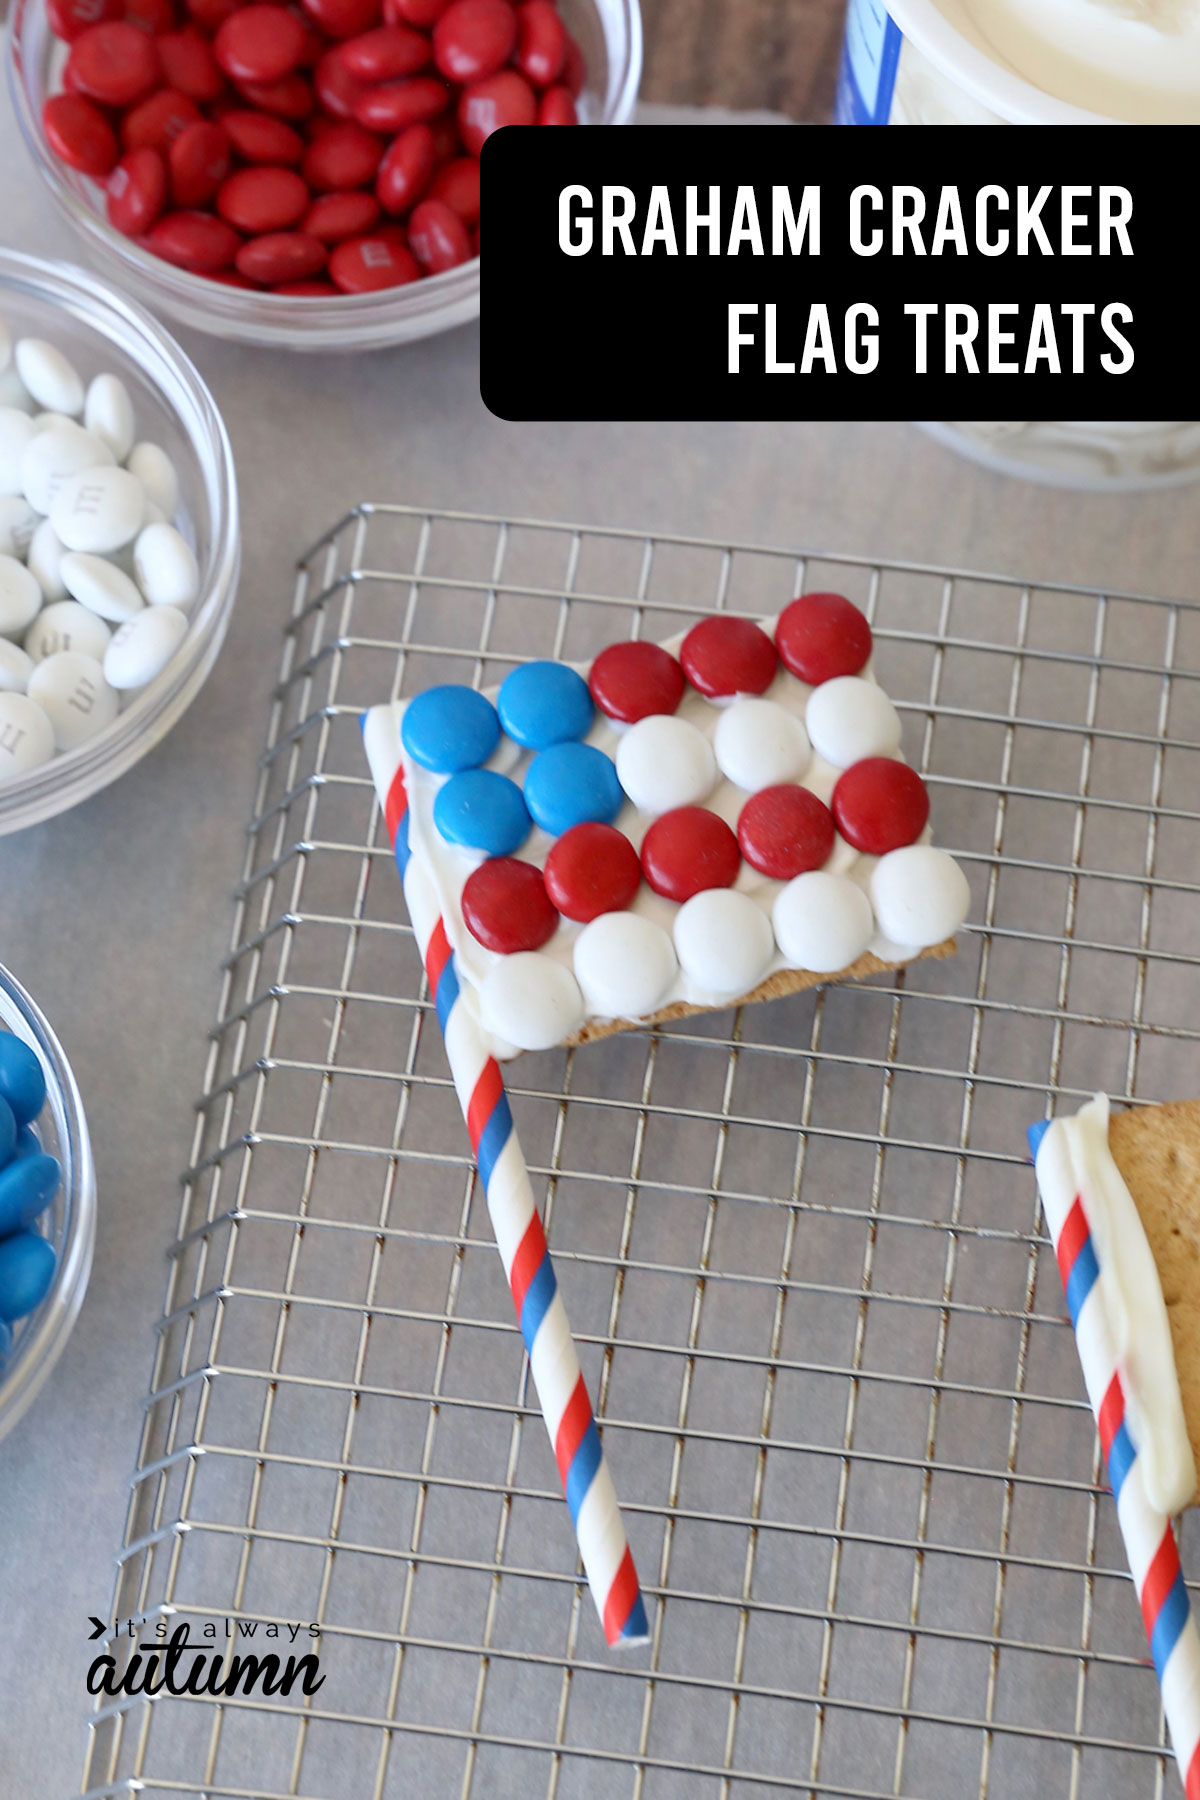 Graham cracker flags are an easy 4th of July treat that kids can make!